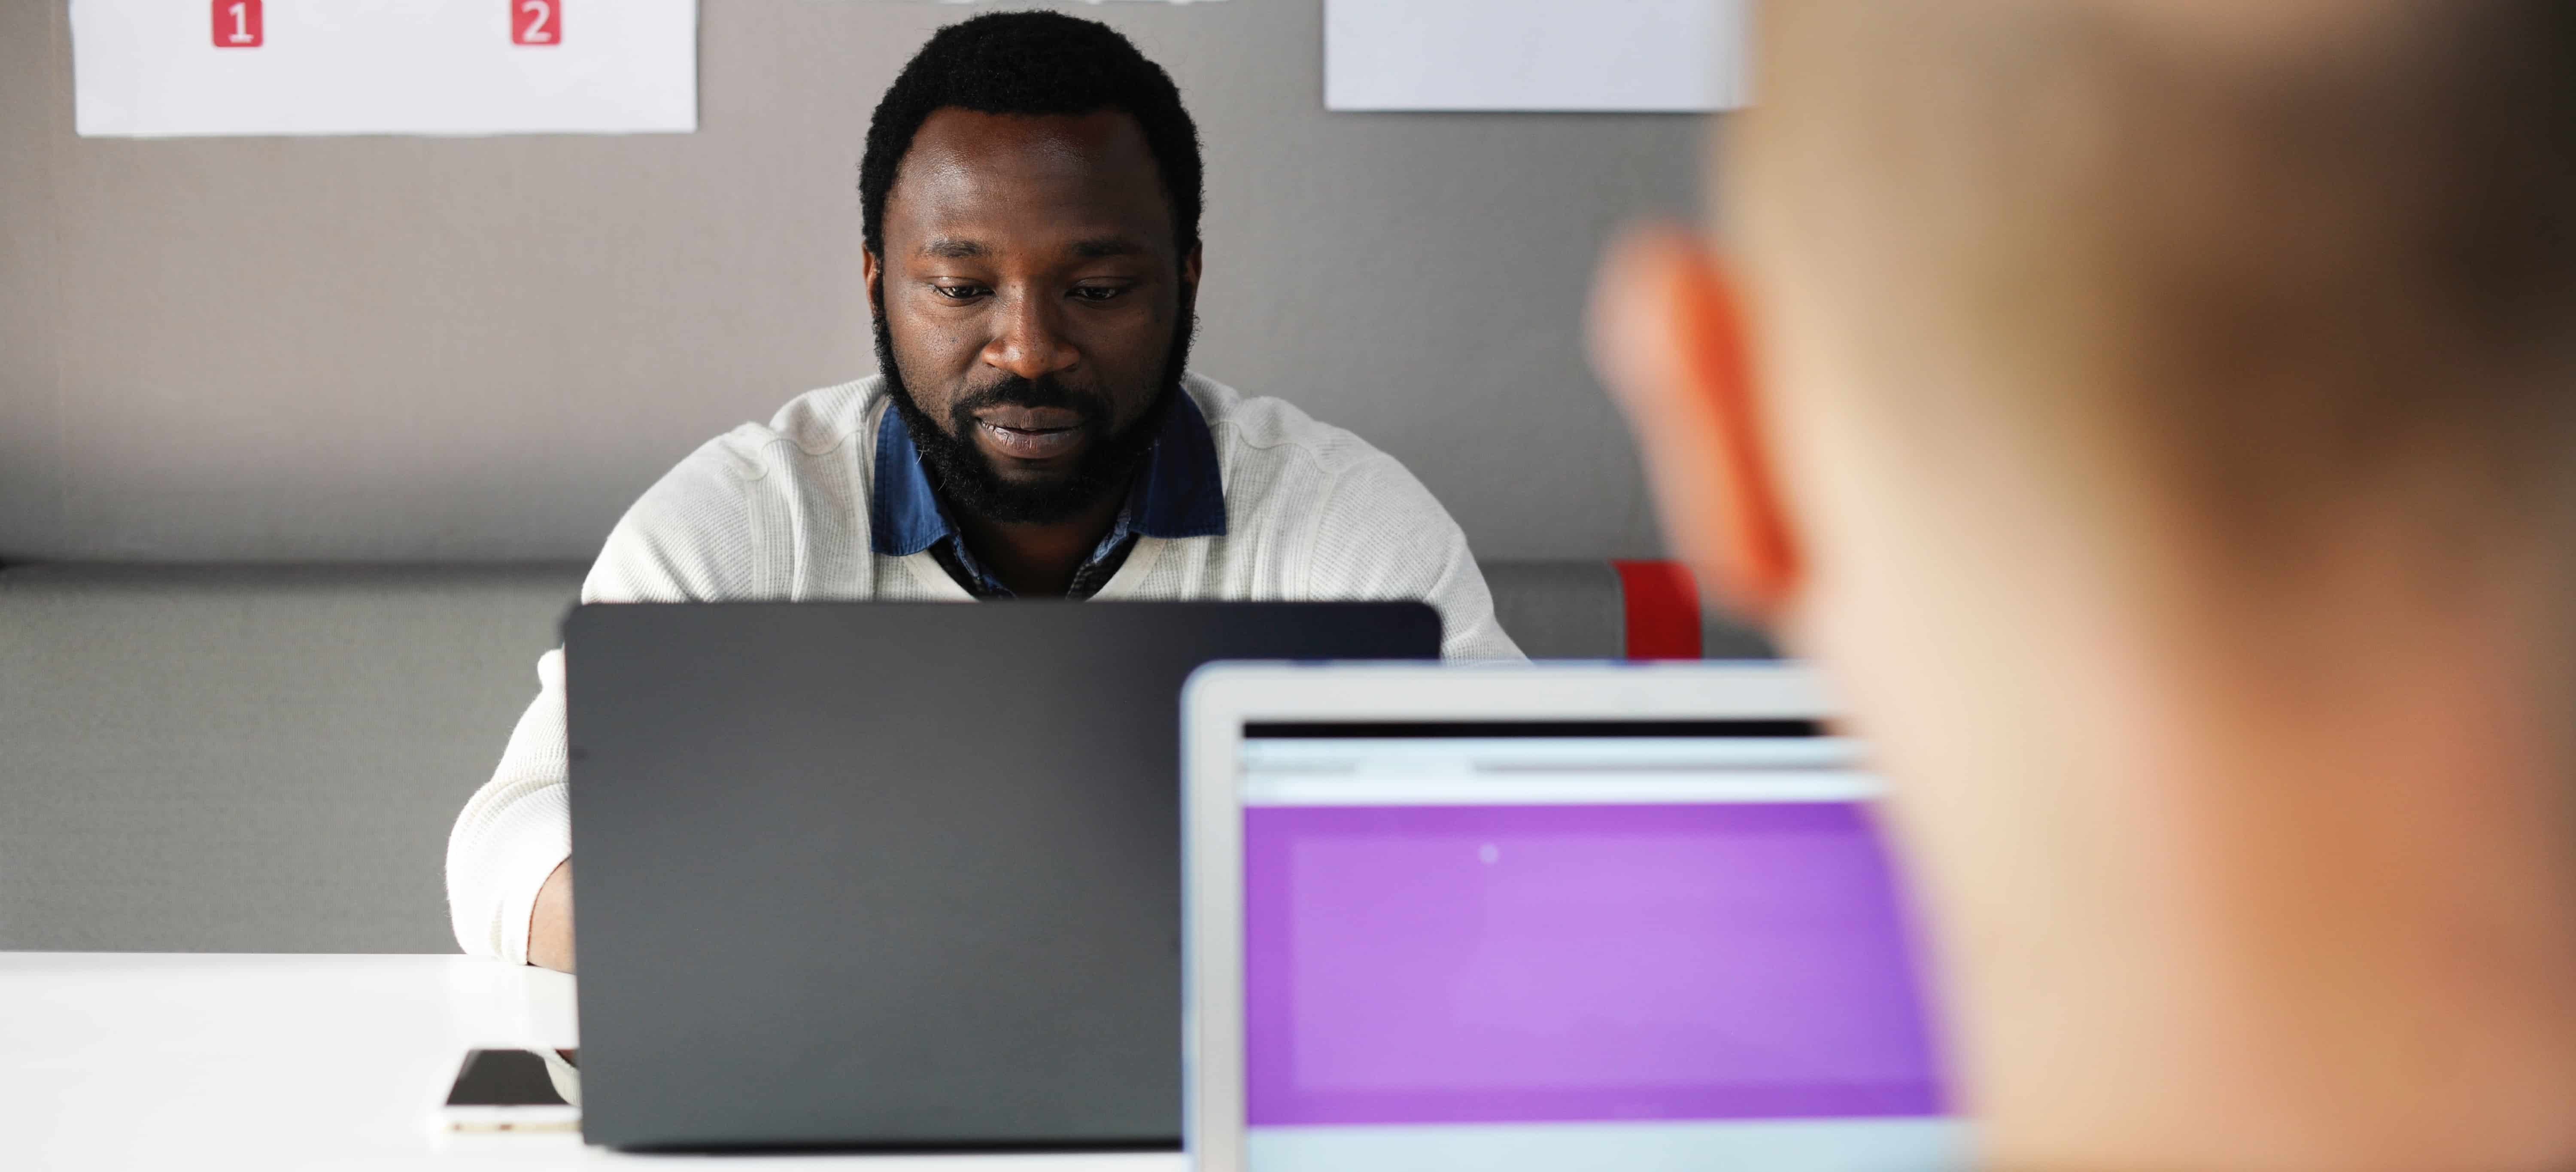 man working at laptop with another man working at laptop out of focus